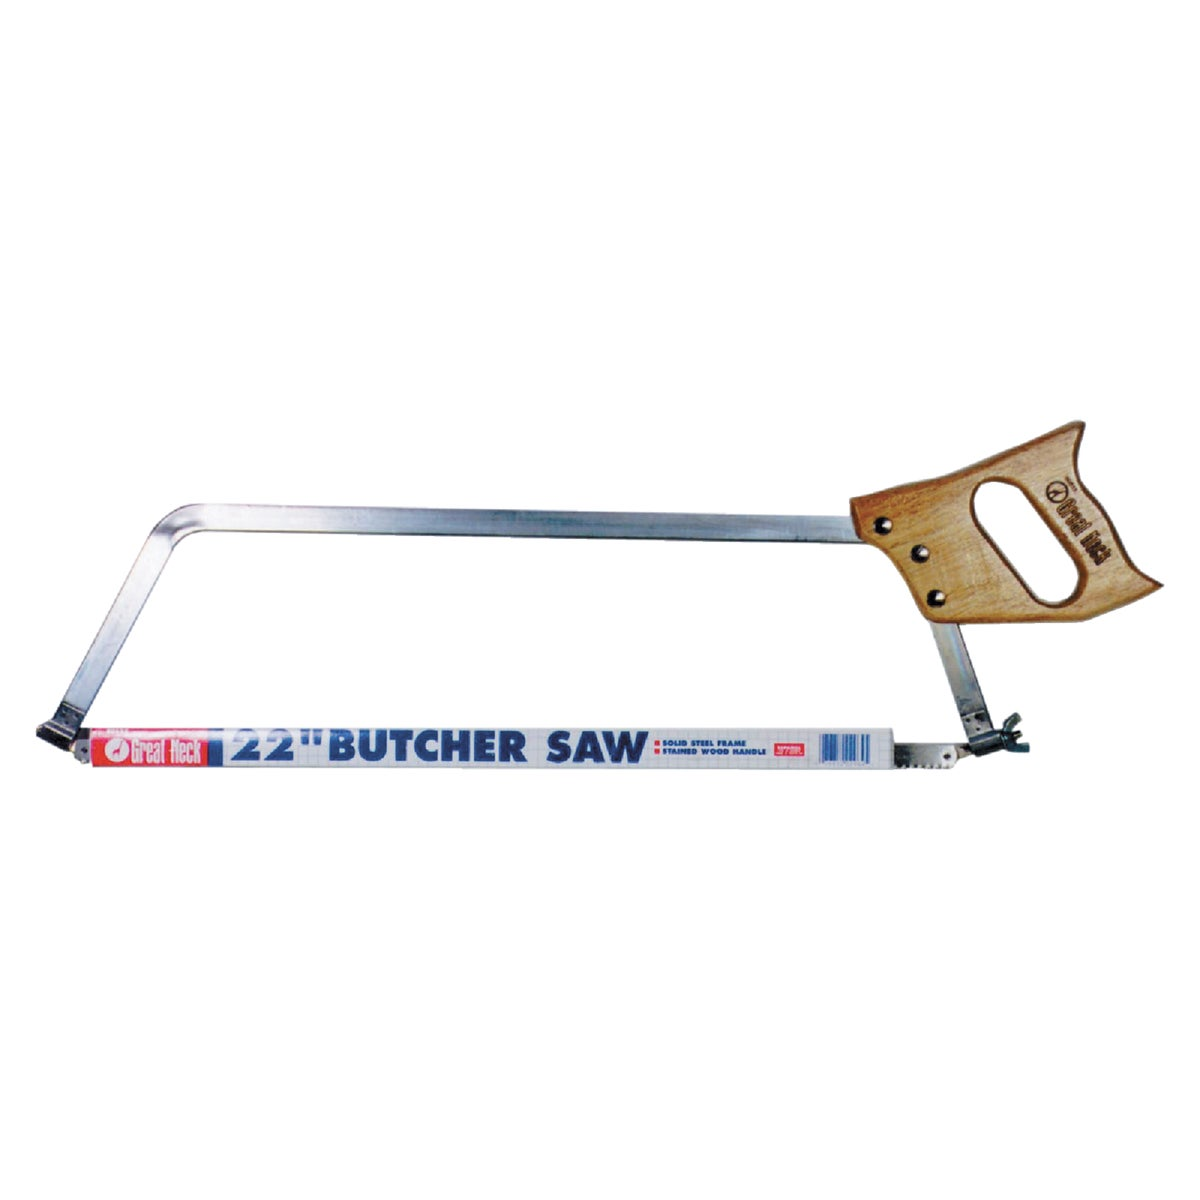 "22"" BUTCHER SAW - BUS22 by Great Neck Saw Inc"